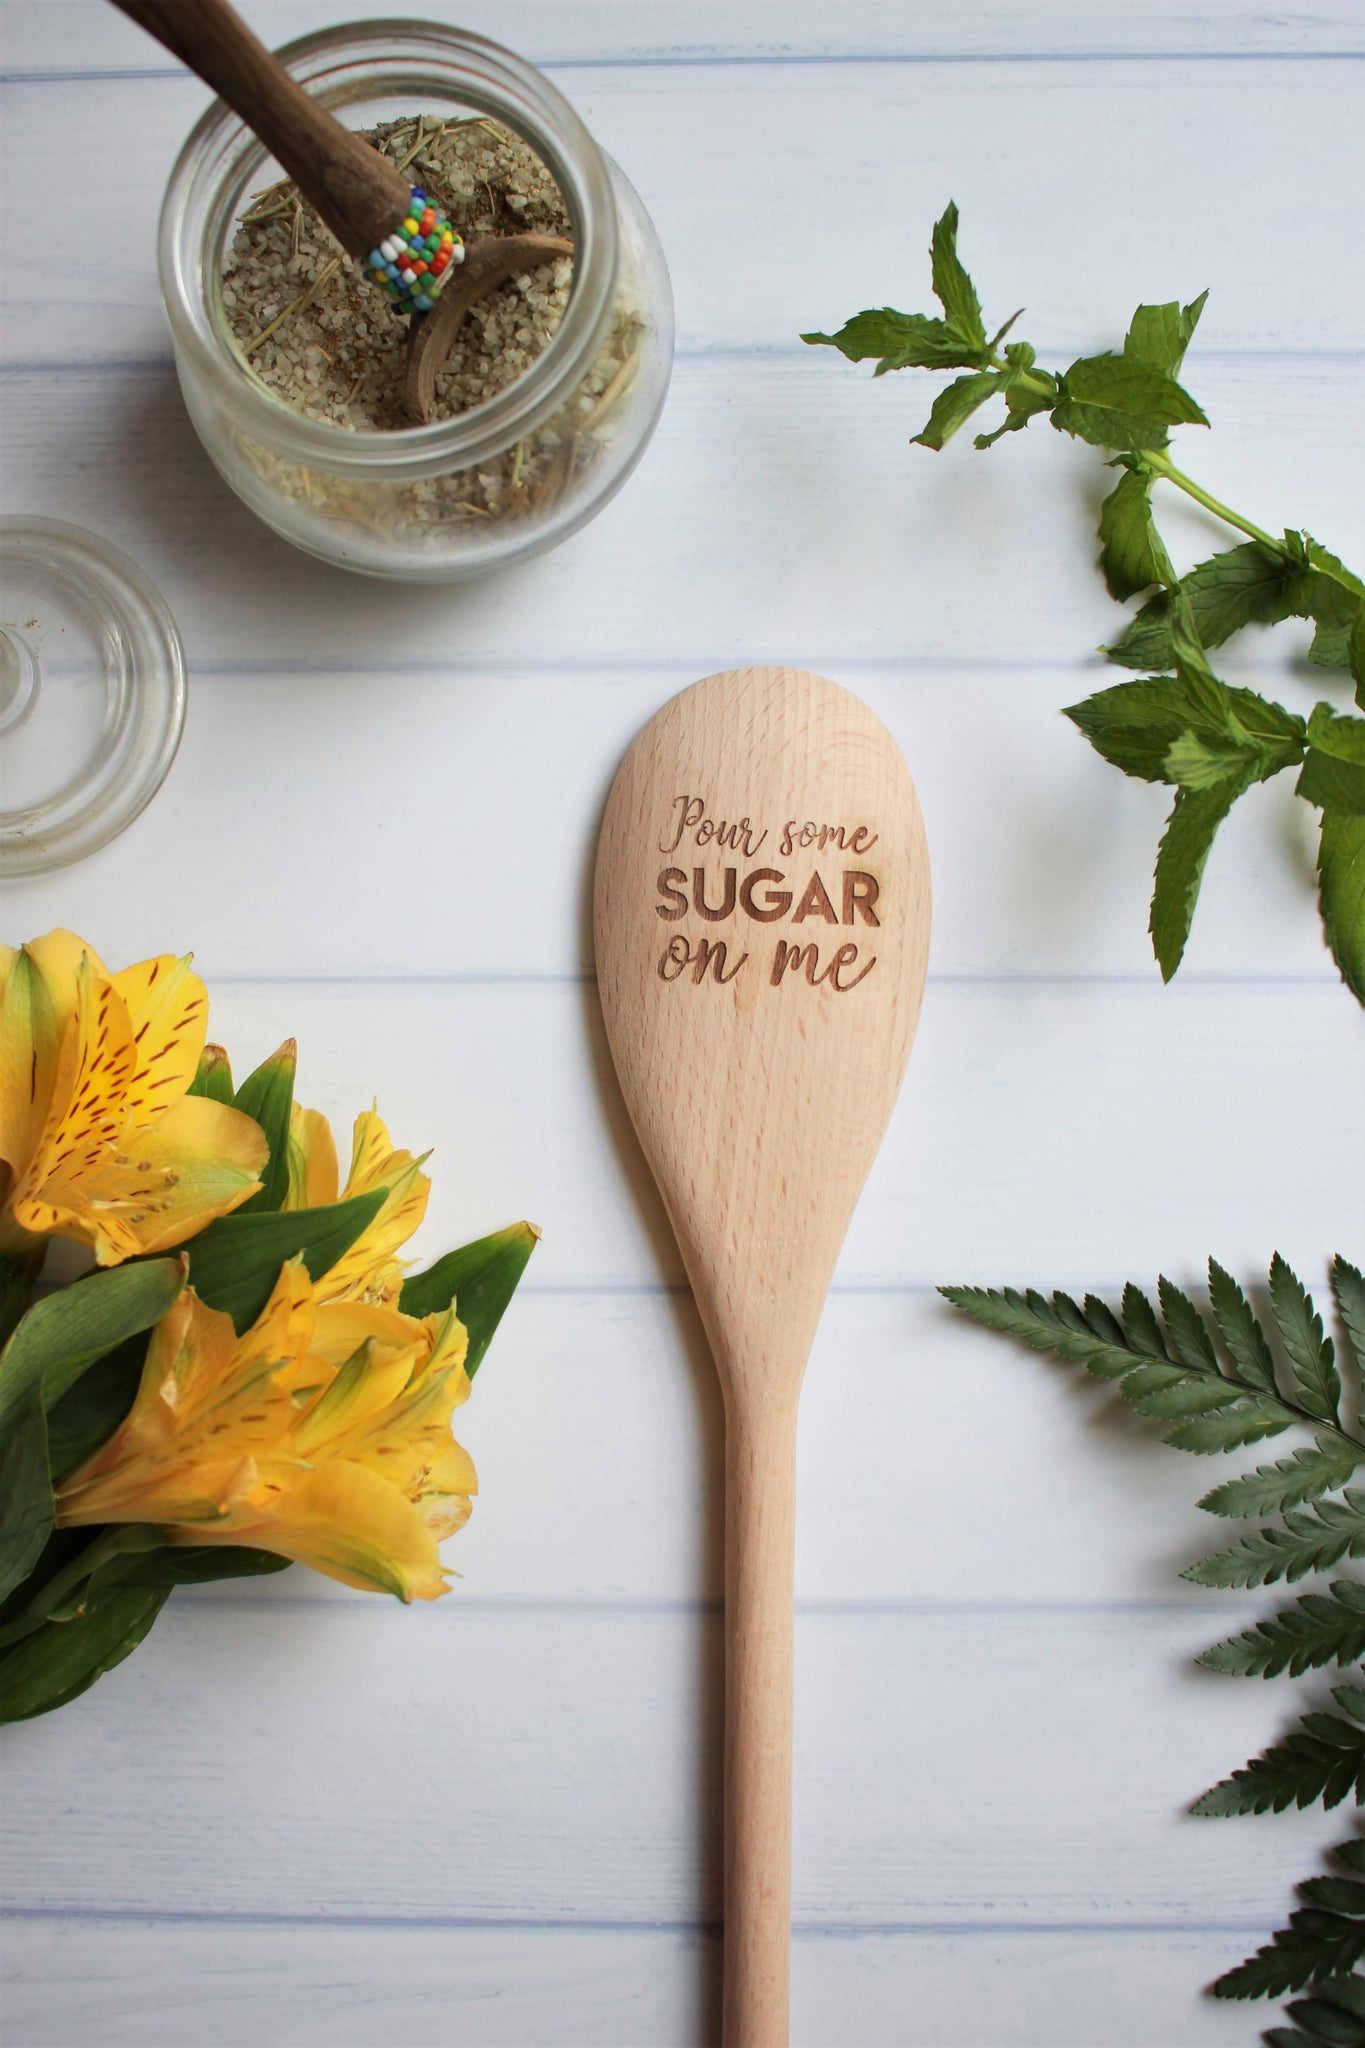 Pour Some Sugar on Me Engraved Wooden Spoon